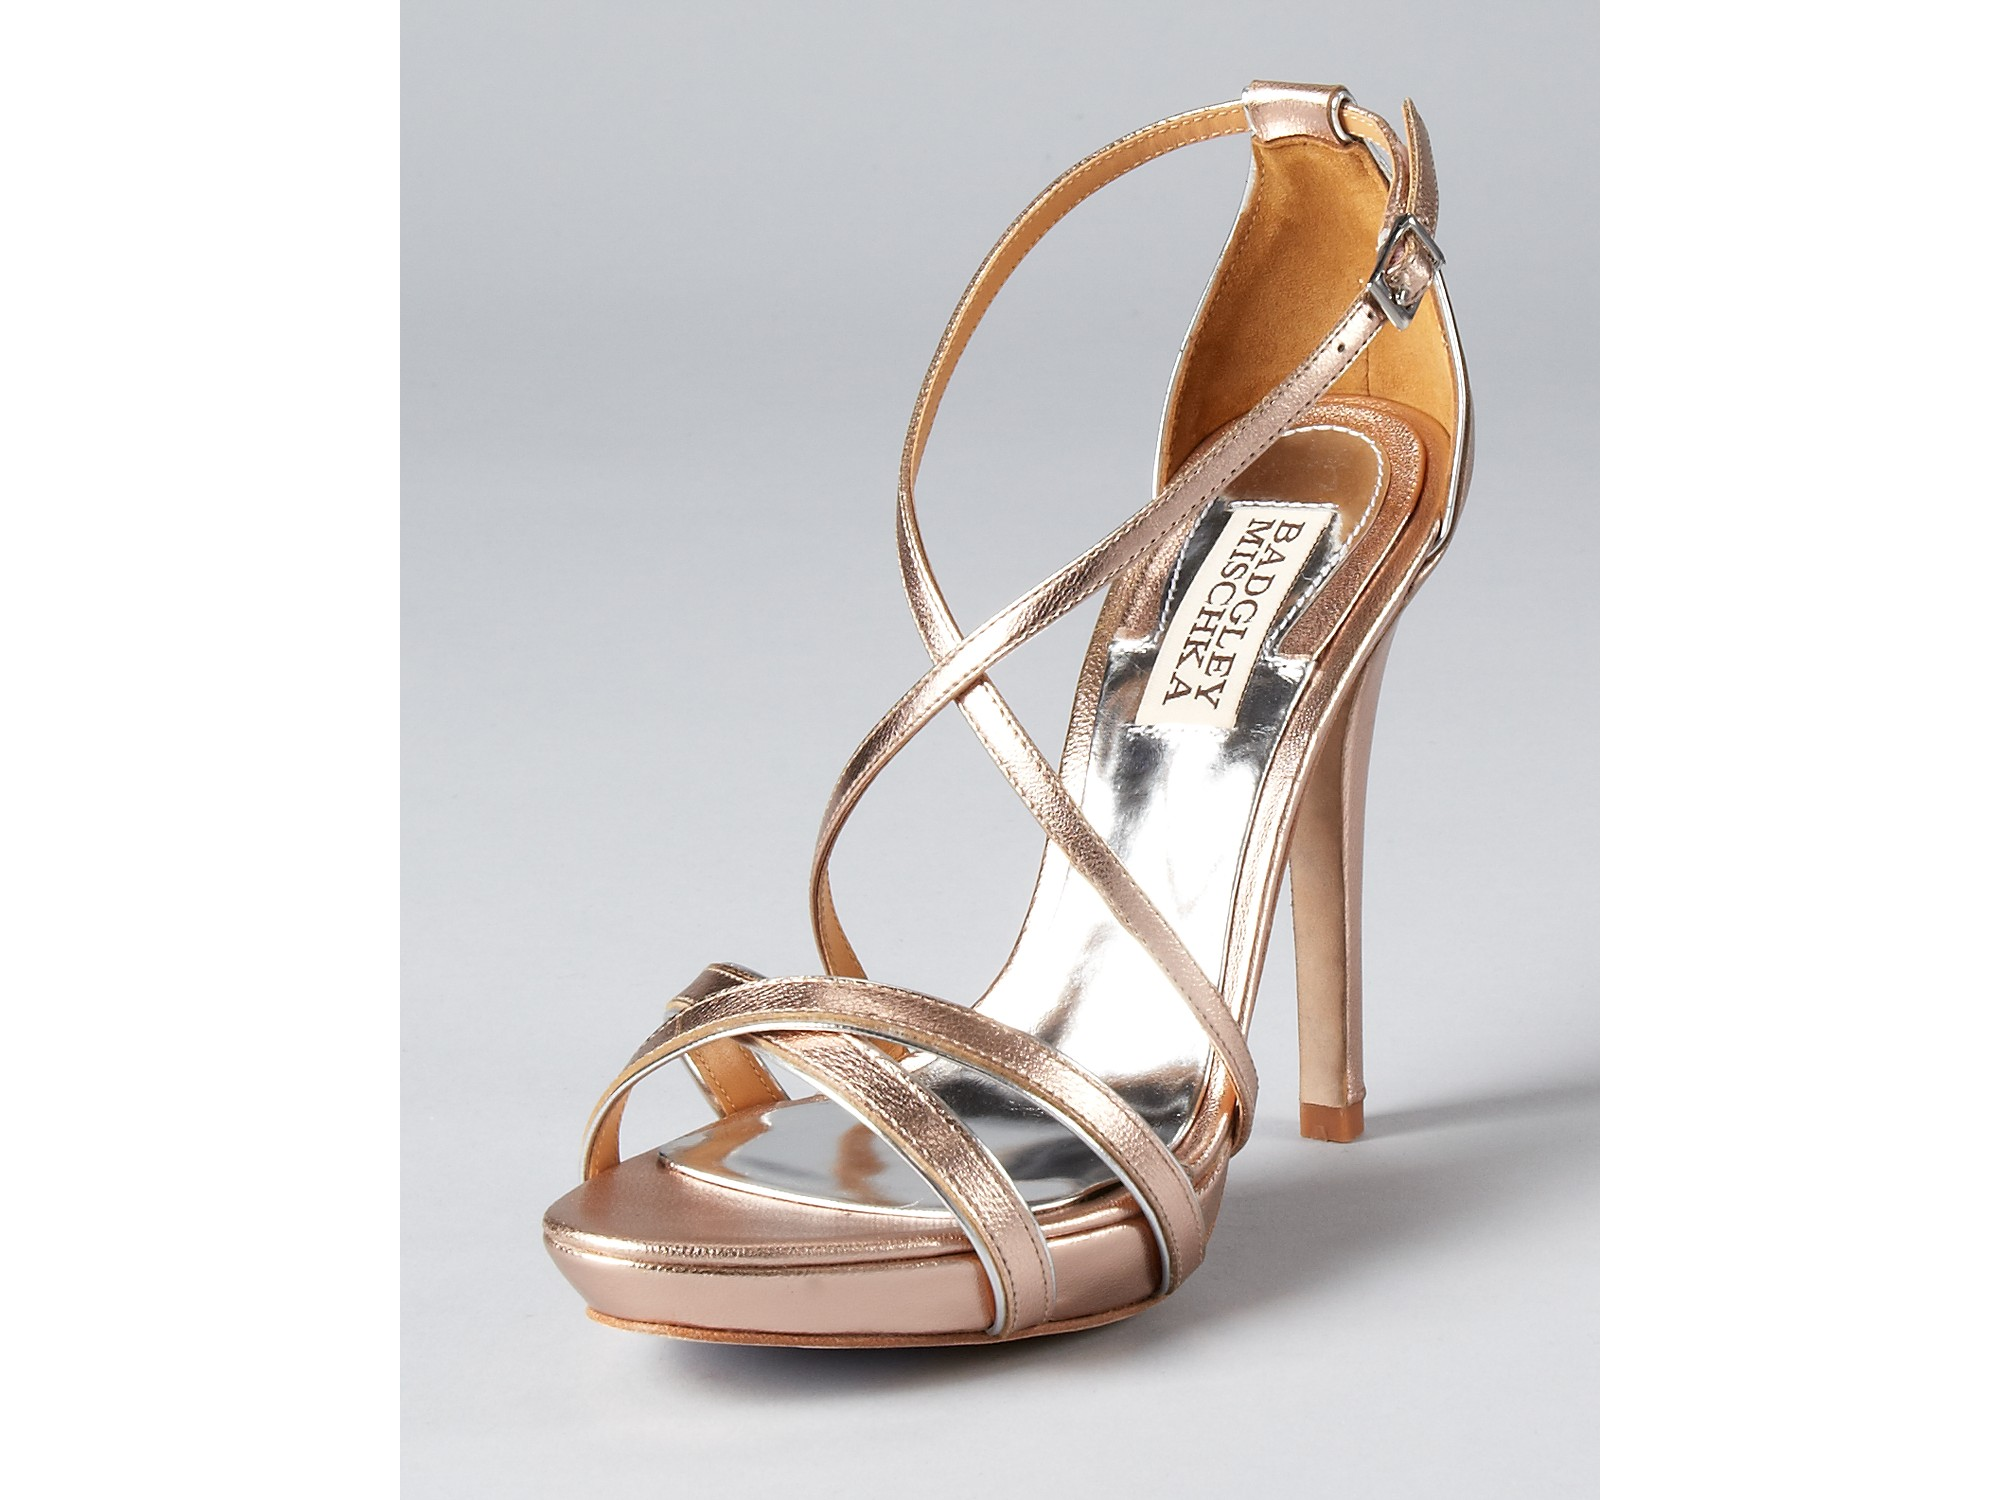 Badgley mischka Sandals Fierce in Metallic